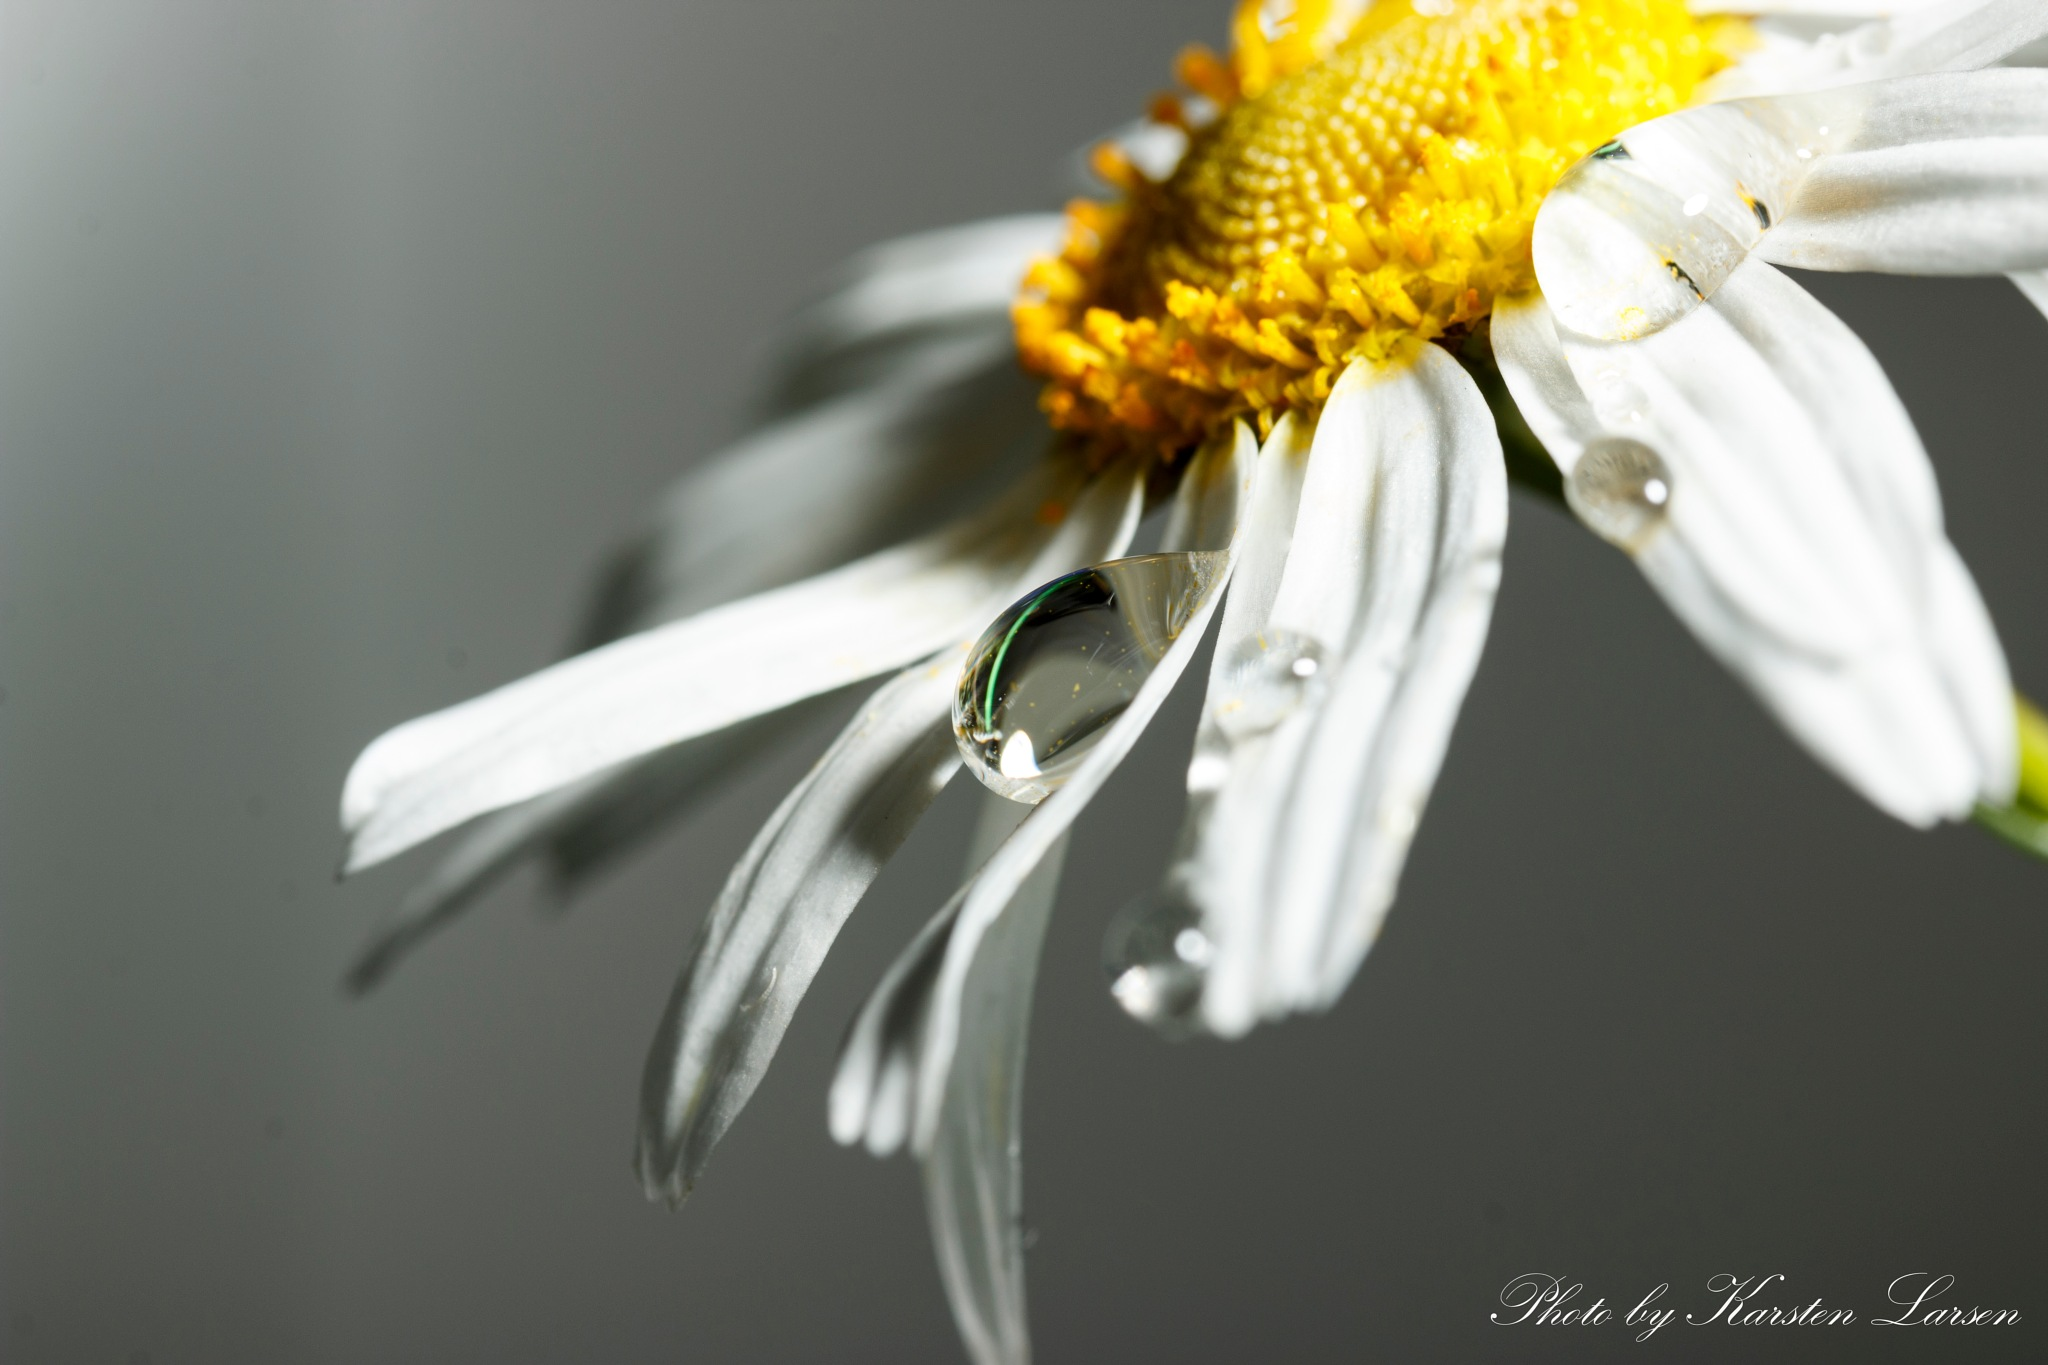 Marguerites with waterdrops by Karsten Larsen